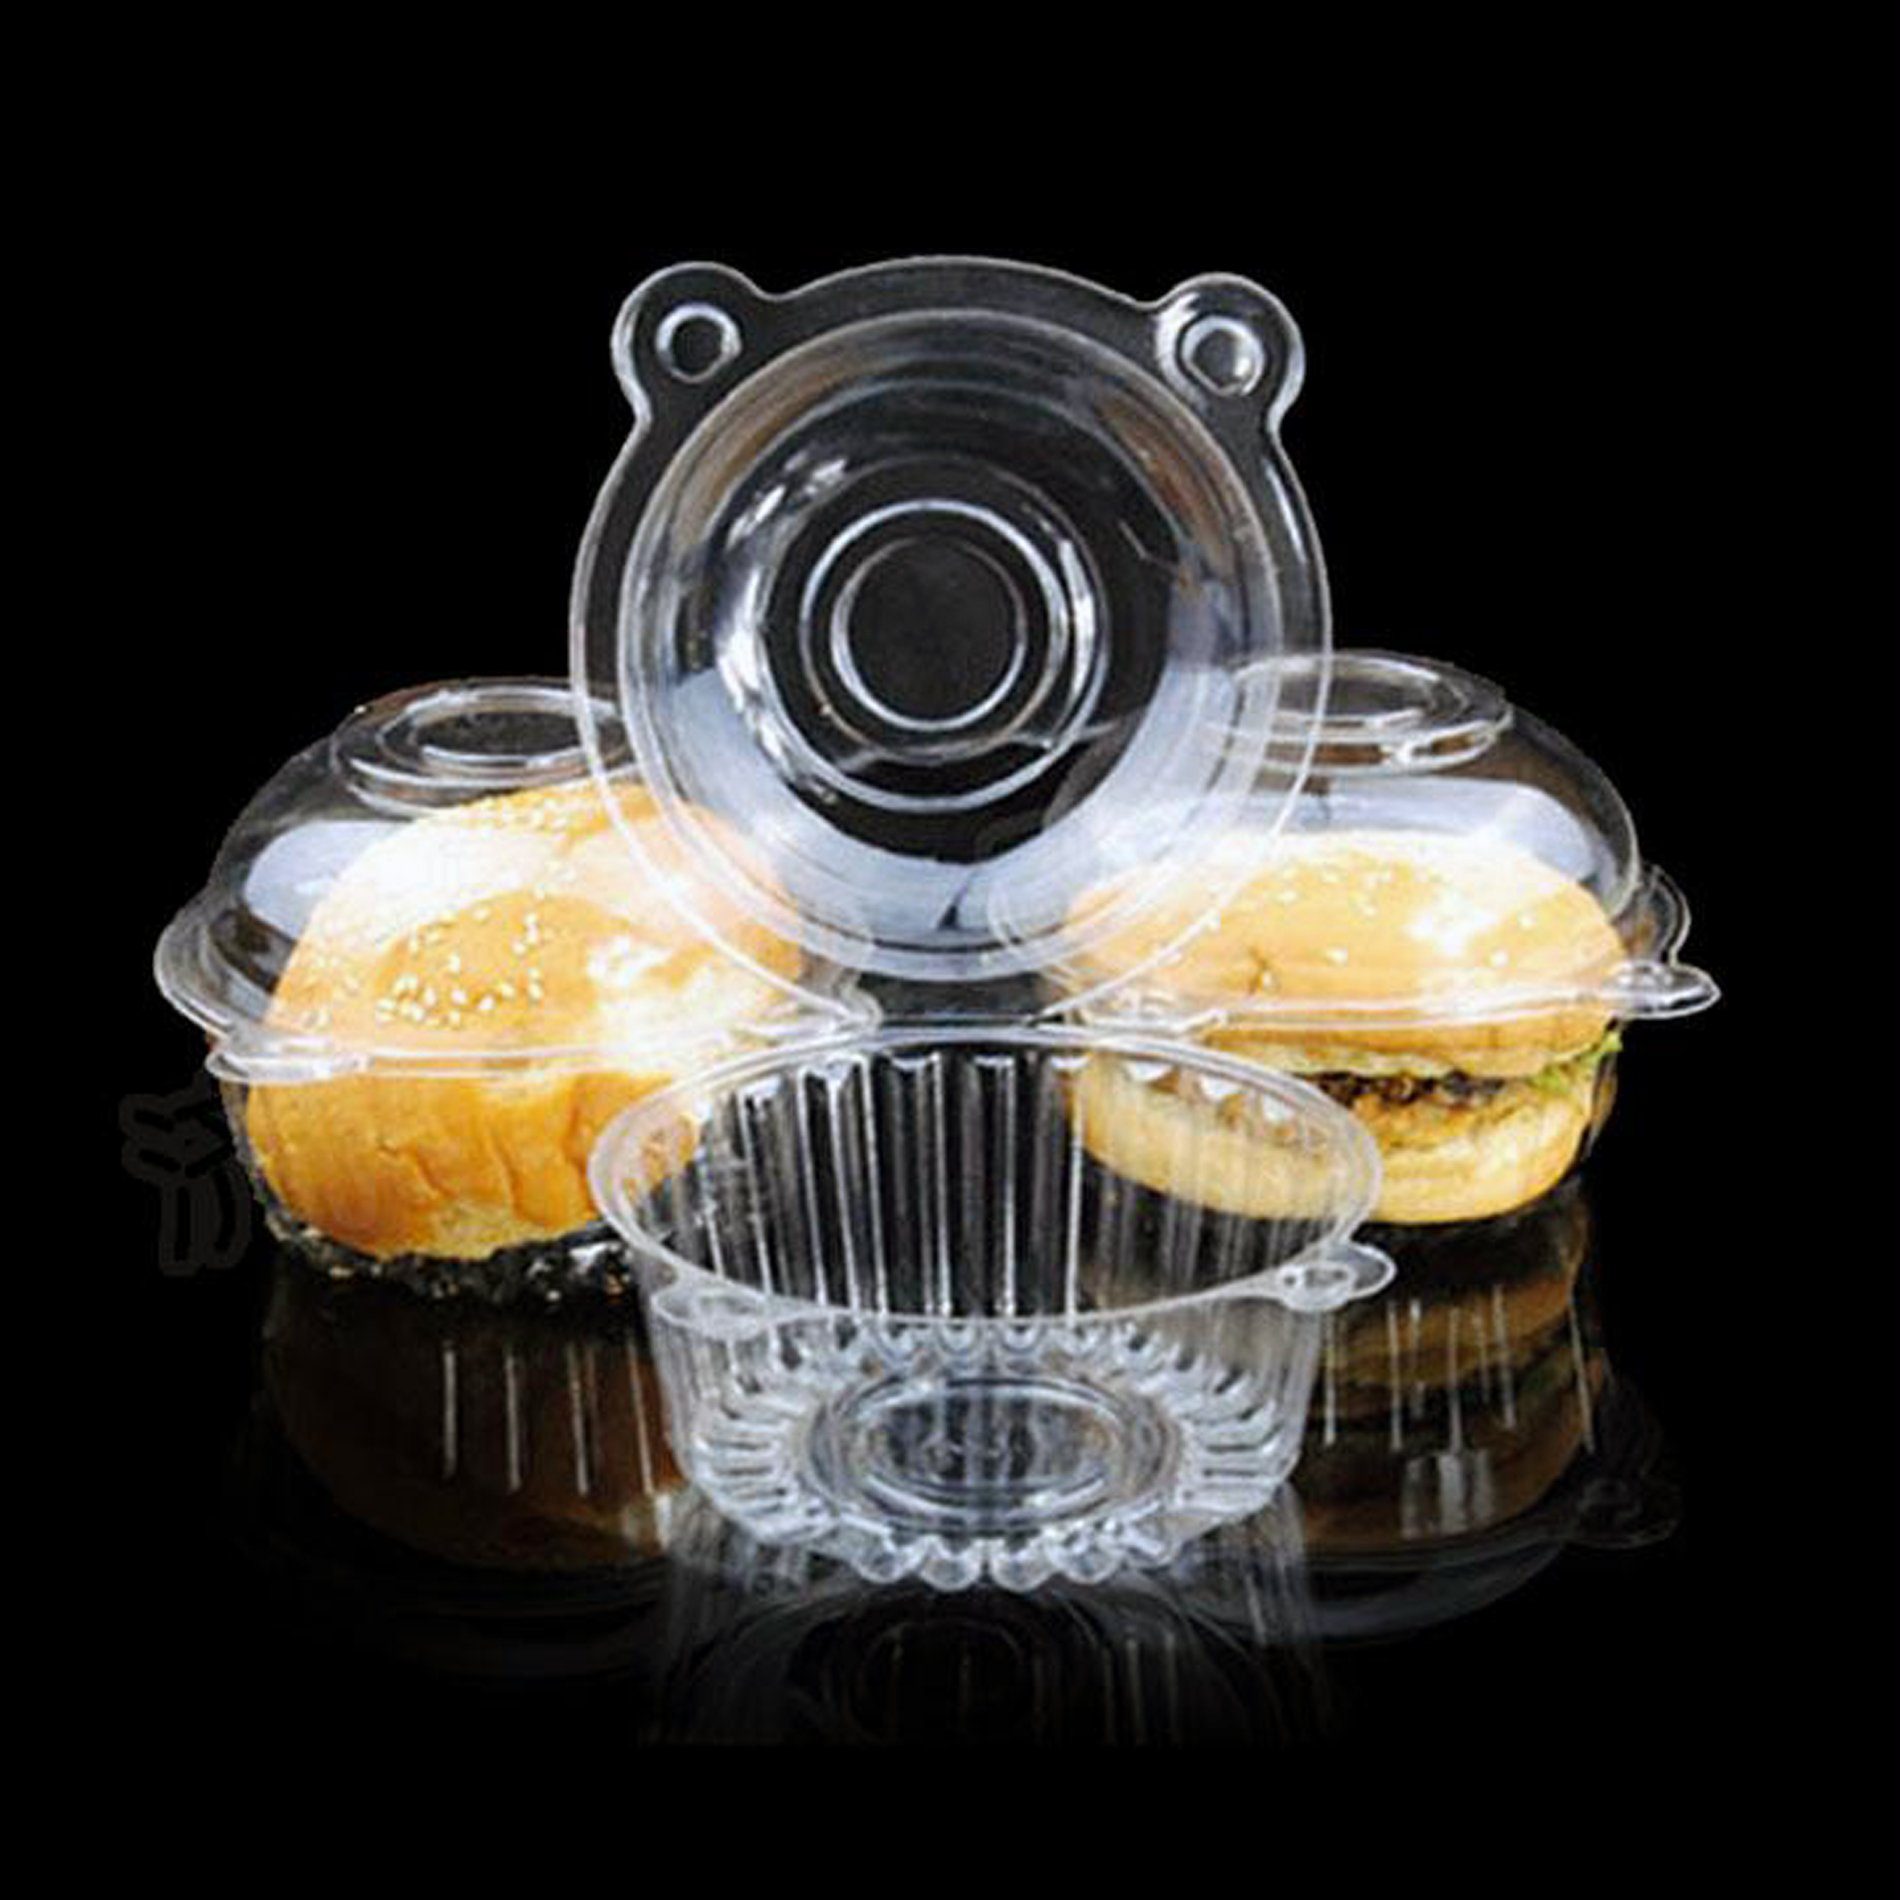 100pcs Clear Plastic Cupcake Cake Muffin Case Dome Holder Box Container by IDS (Image #4)